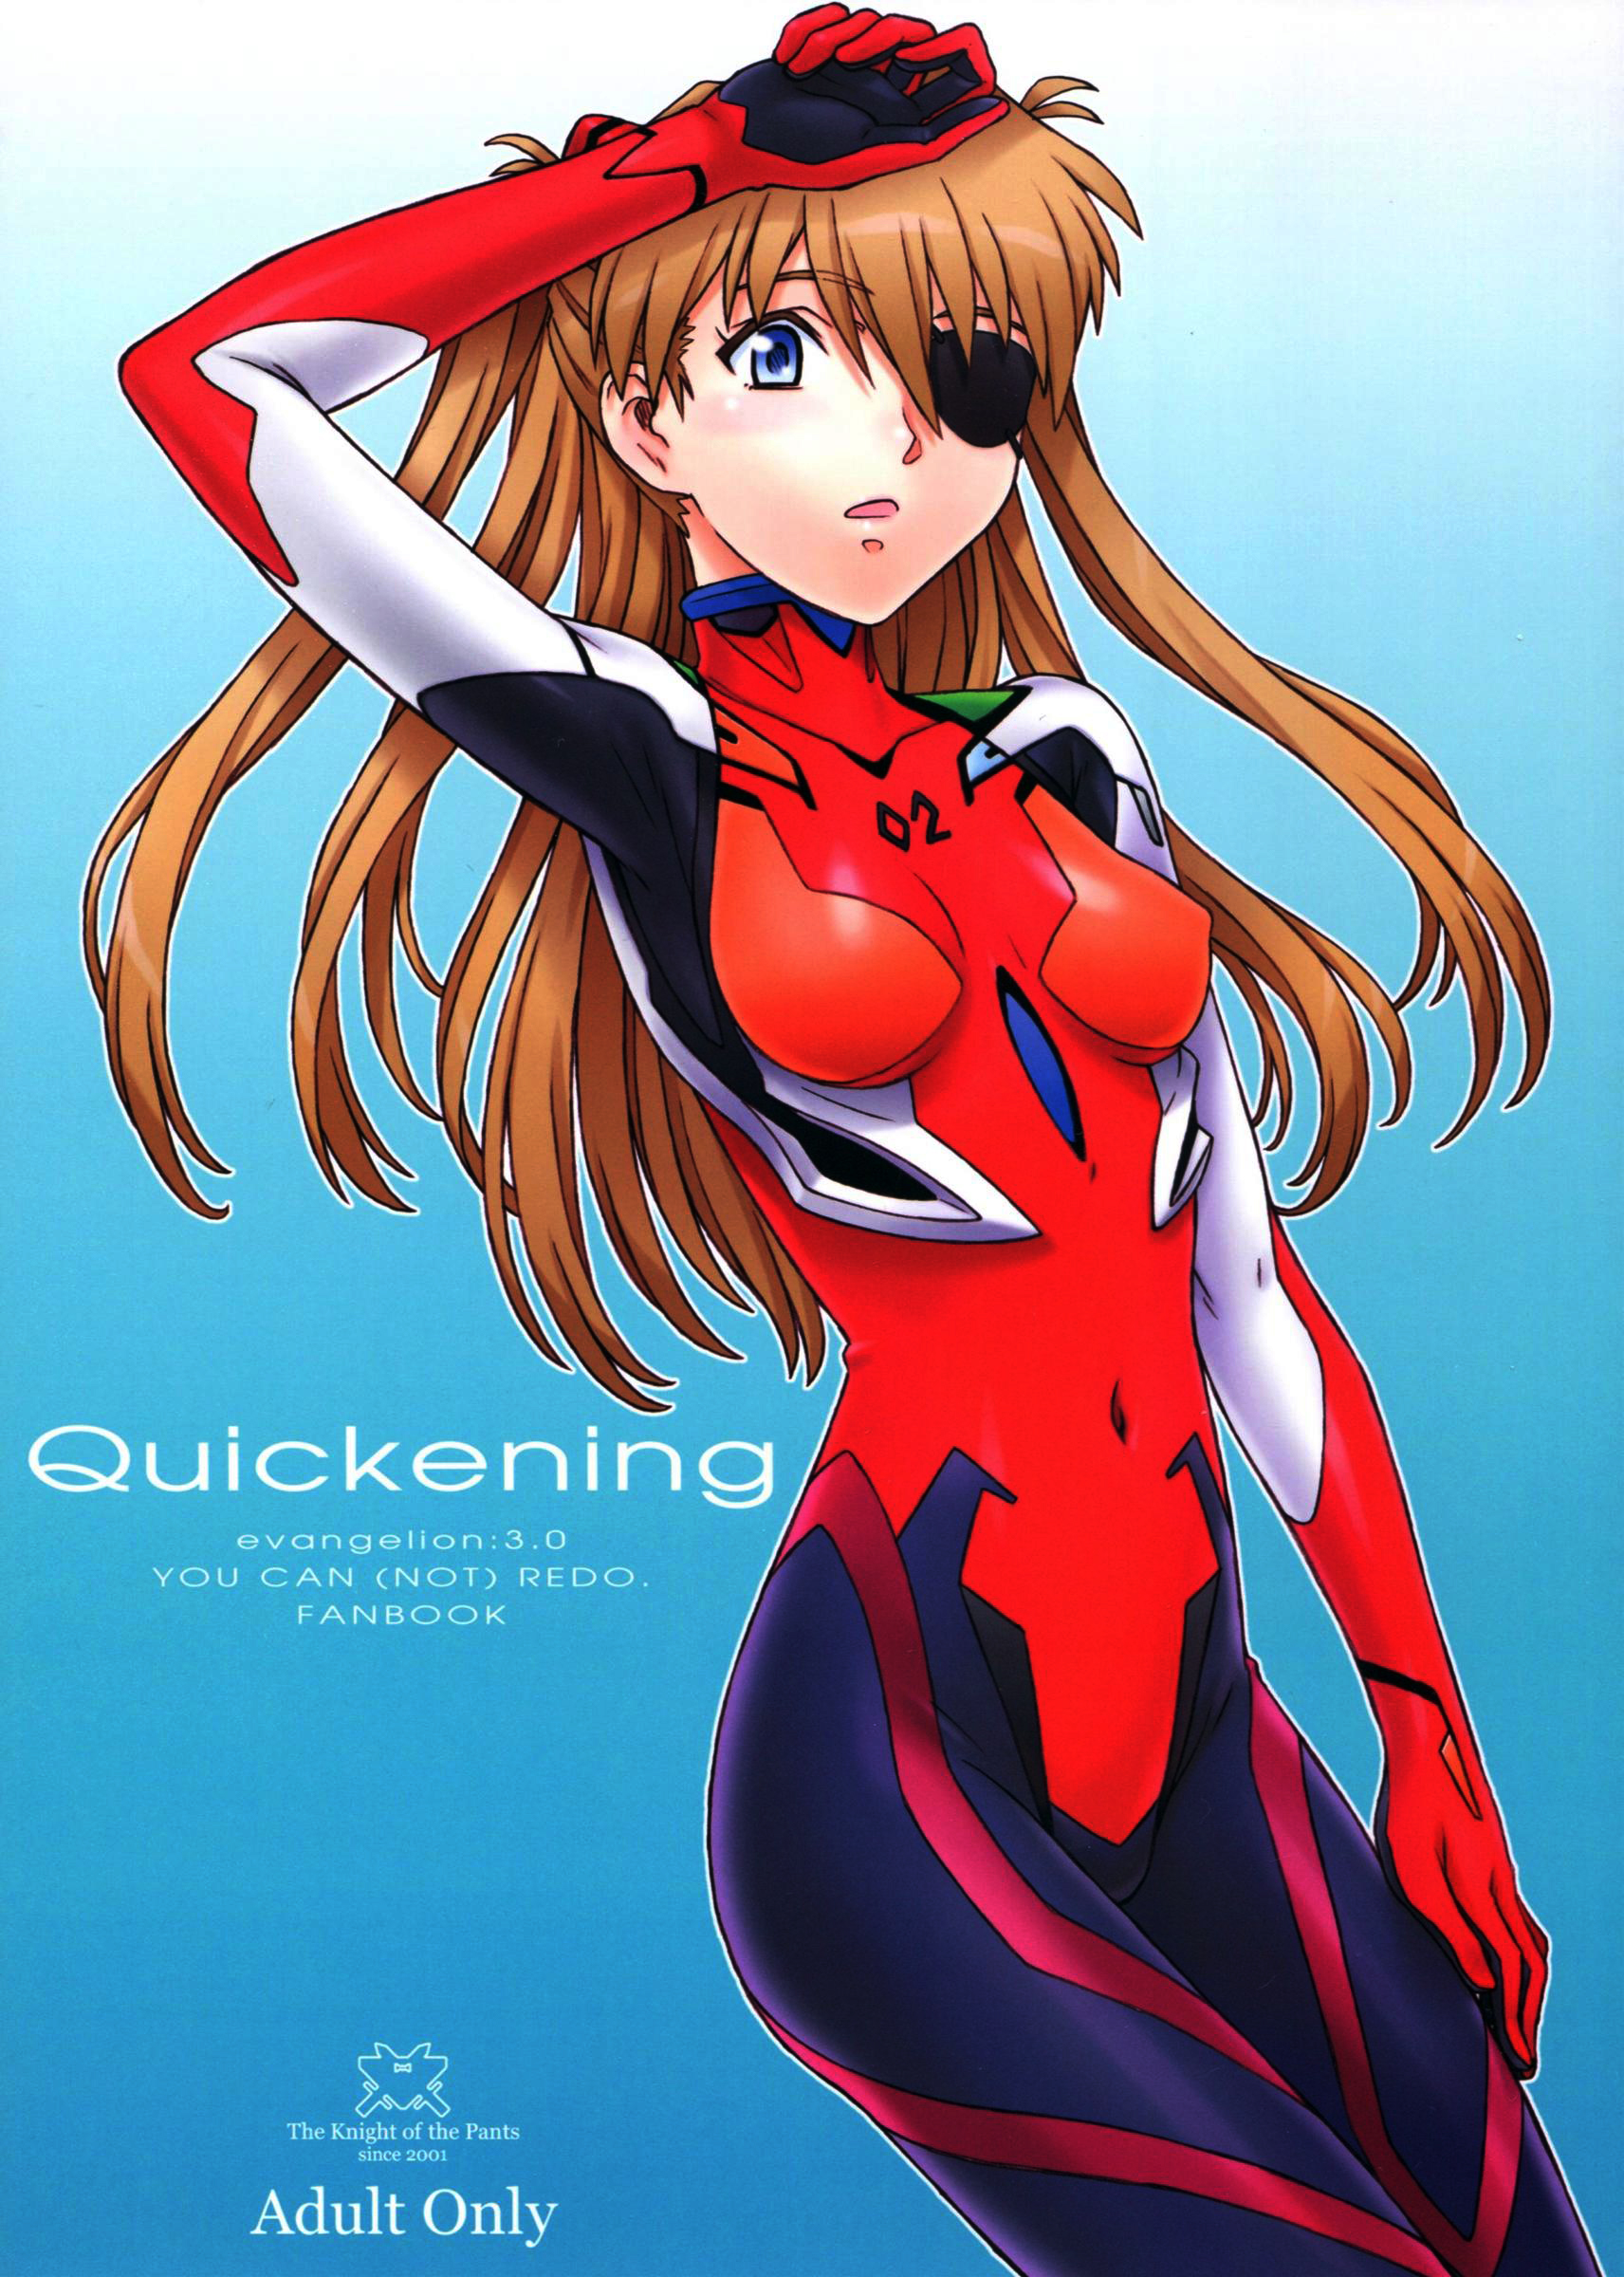 Asuka performing oral sex on shinji